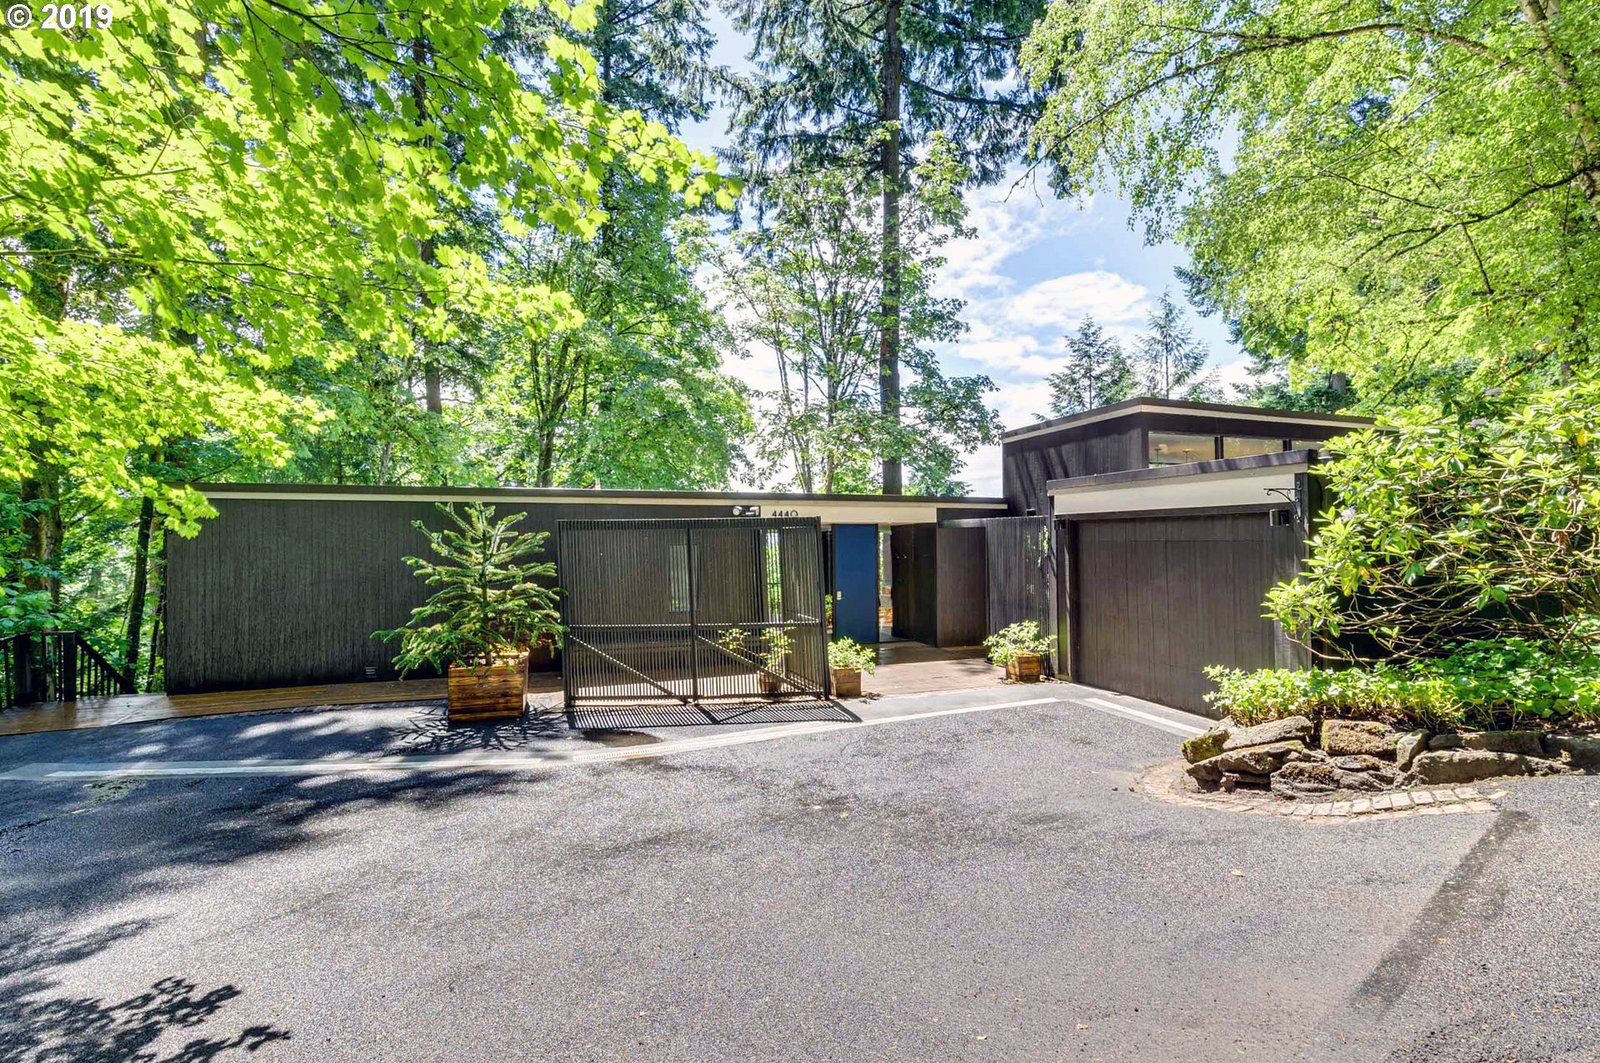 Photo 1 of 19 in A Marvelous Midcentury With a Bright Blue Door Hits the Market For $1.15M